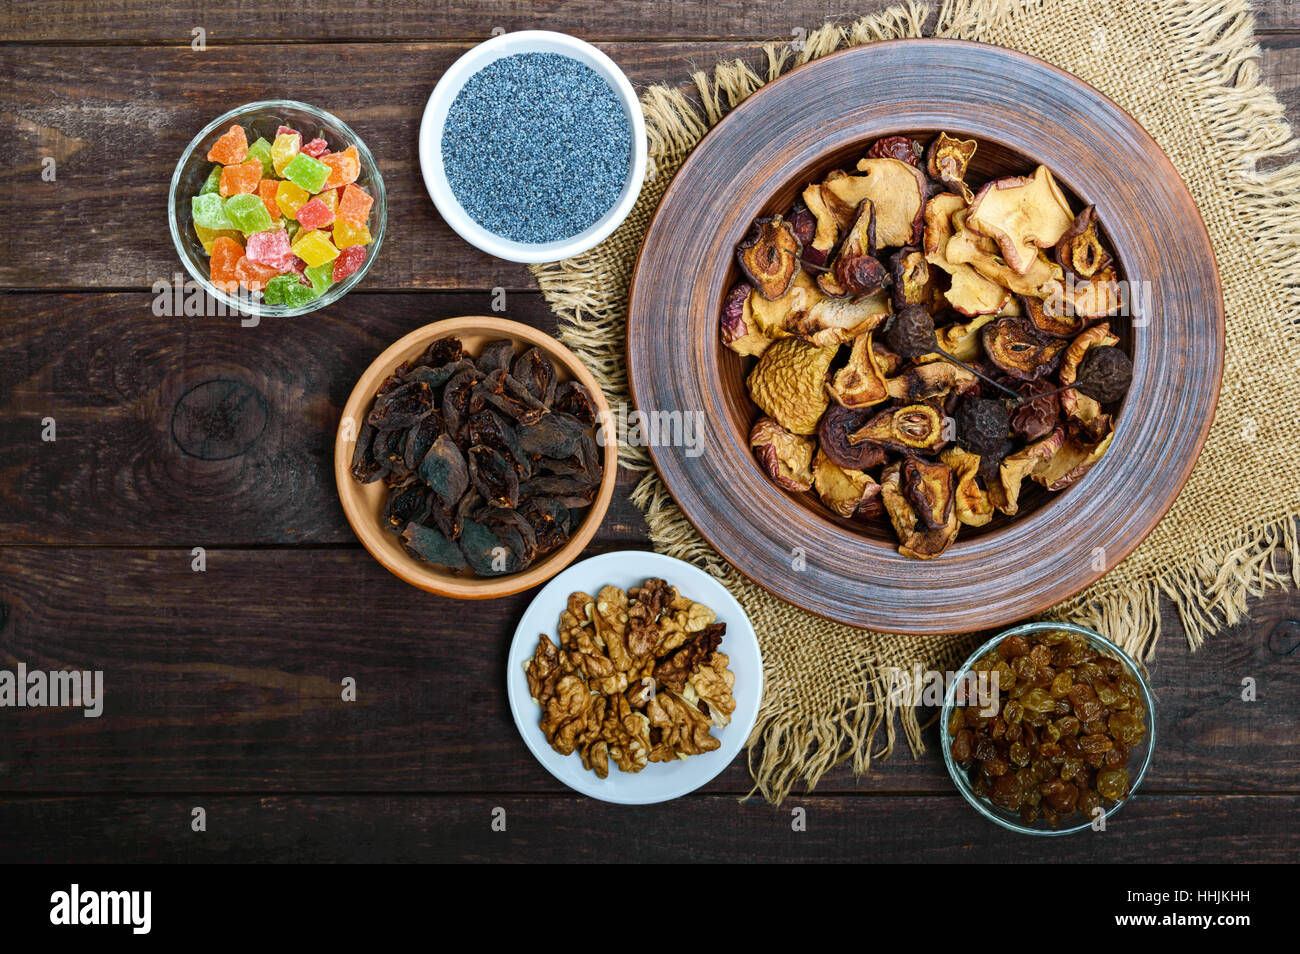 Dried fruit (apples, pears, apricot), berries, walnut kernels, raisins, poppy seeds in a bowl on dark wooden background. - Stock Image